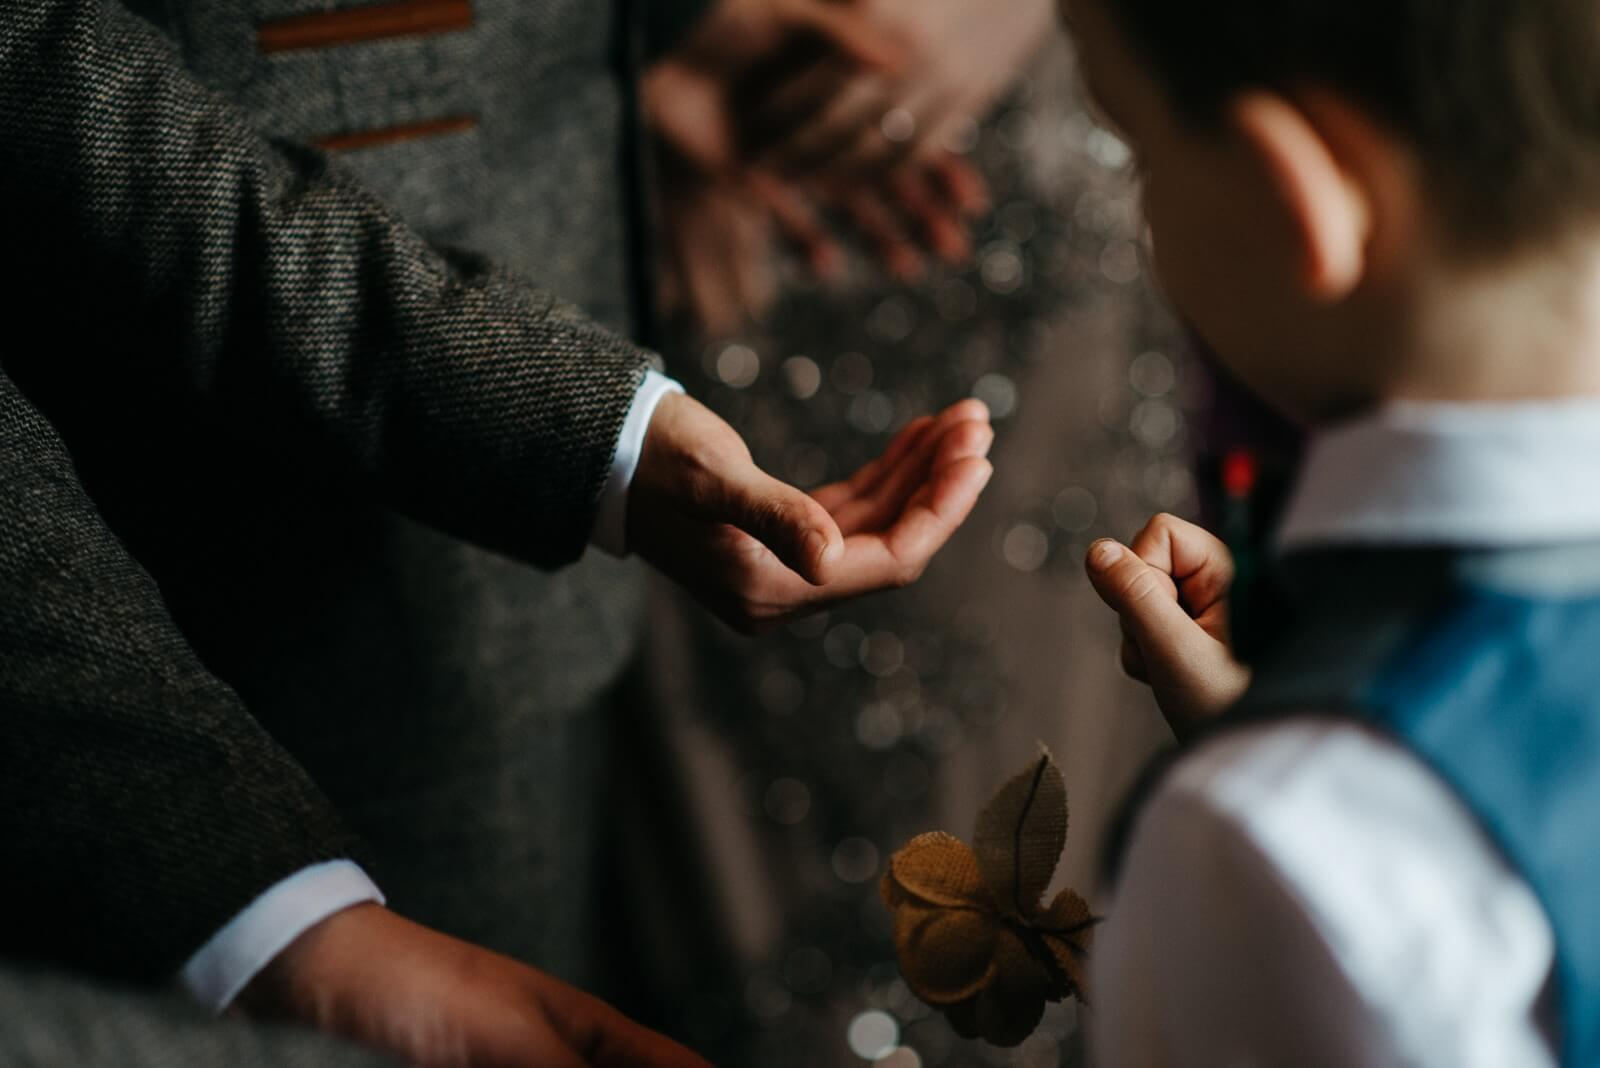 Small groomsmen pageboy handing the groom the wedding bands during their Cardiff wedding ceremony at Ty Mawr